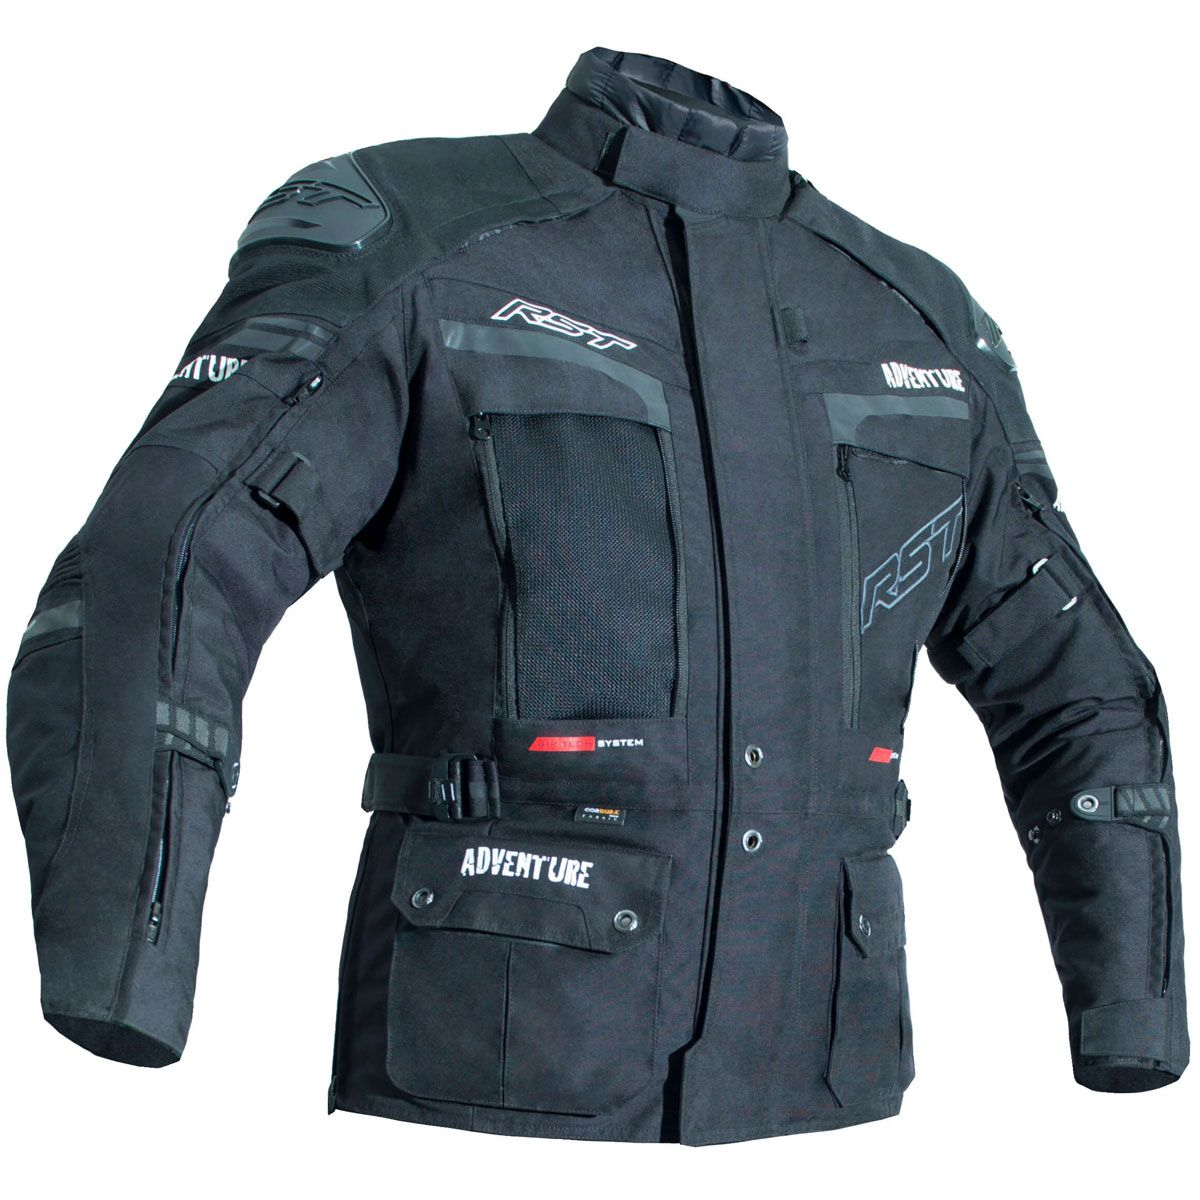 RST Pro Series Adventure III CE Textile Jacket Black